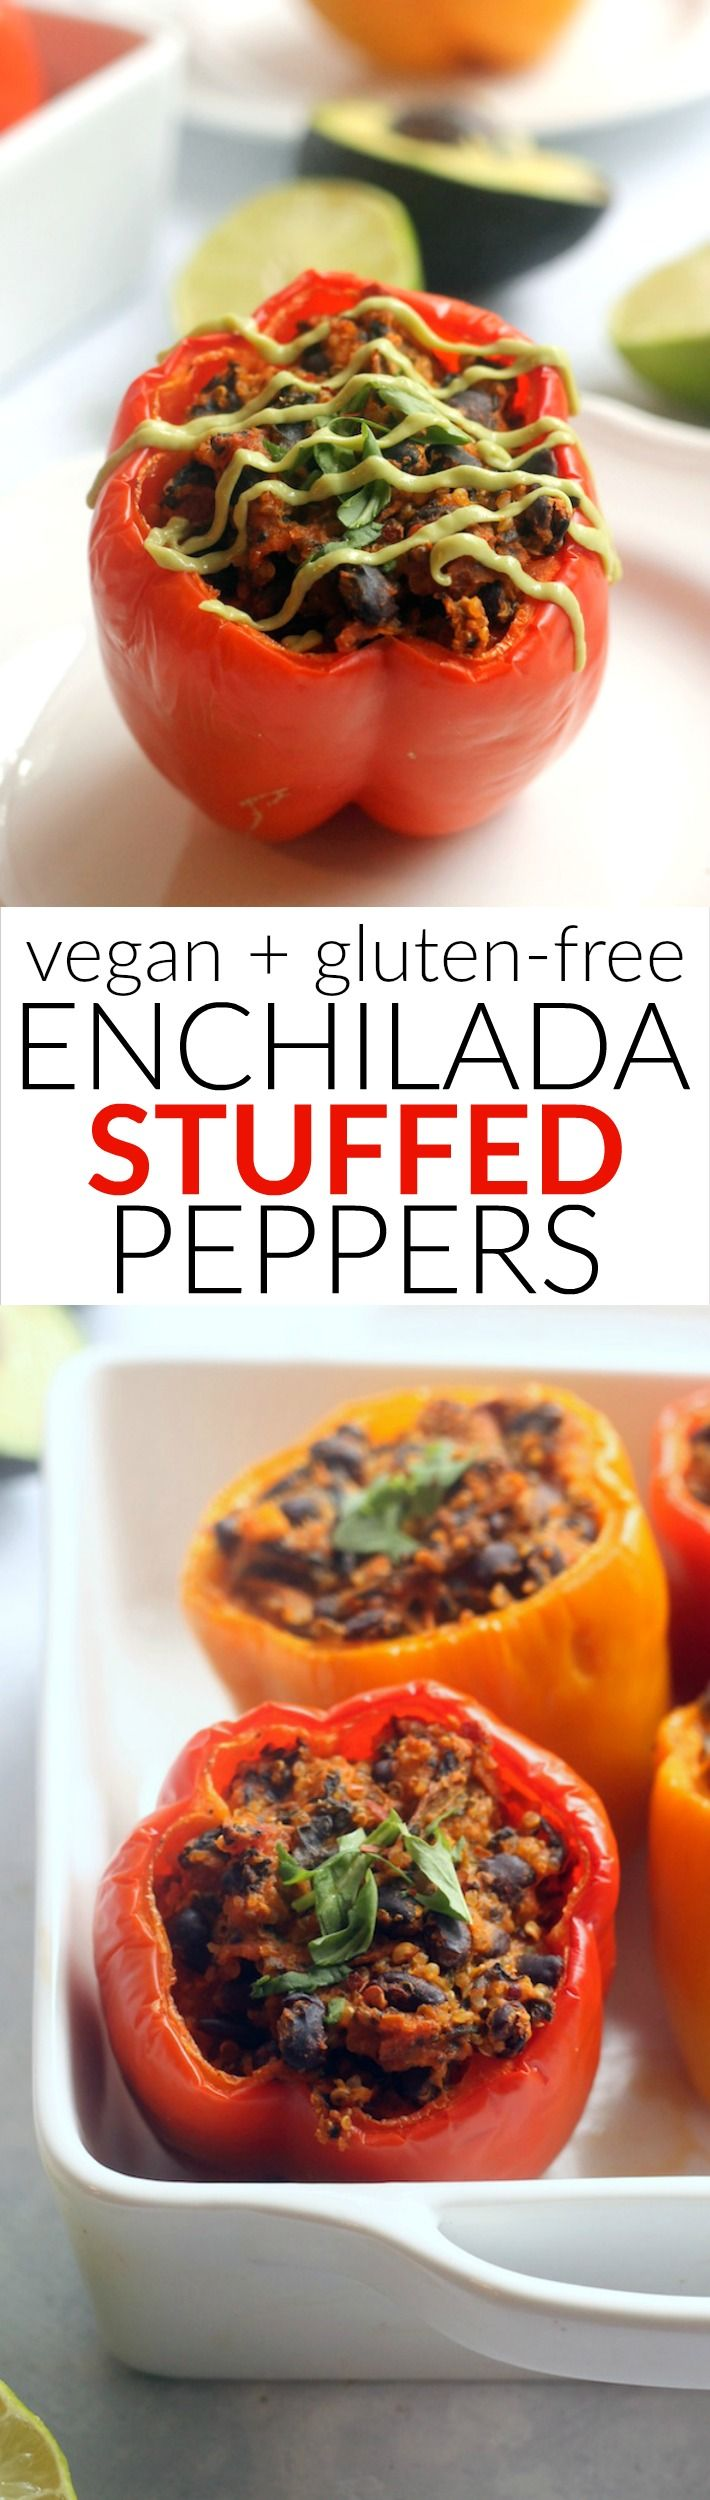 These Vegan Enchilada Stuffed Peppers with Avocado Cream are packed with protein and fiber for a delicious and healthy meatless meal the whole family will love!